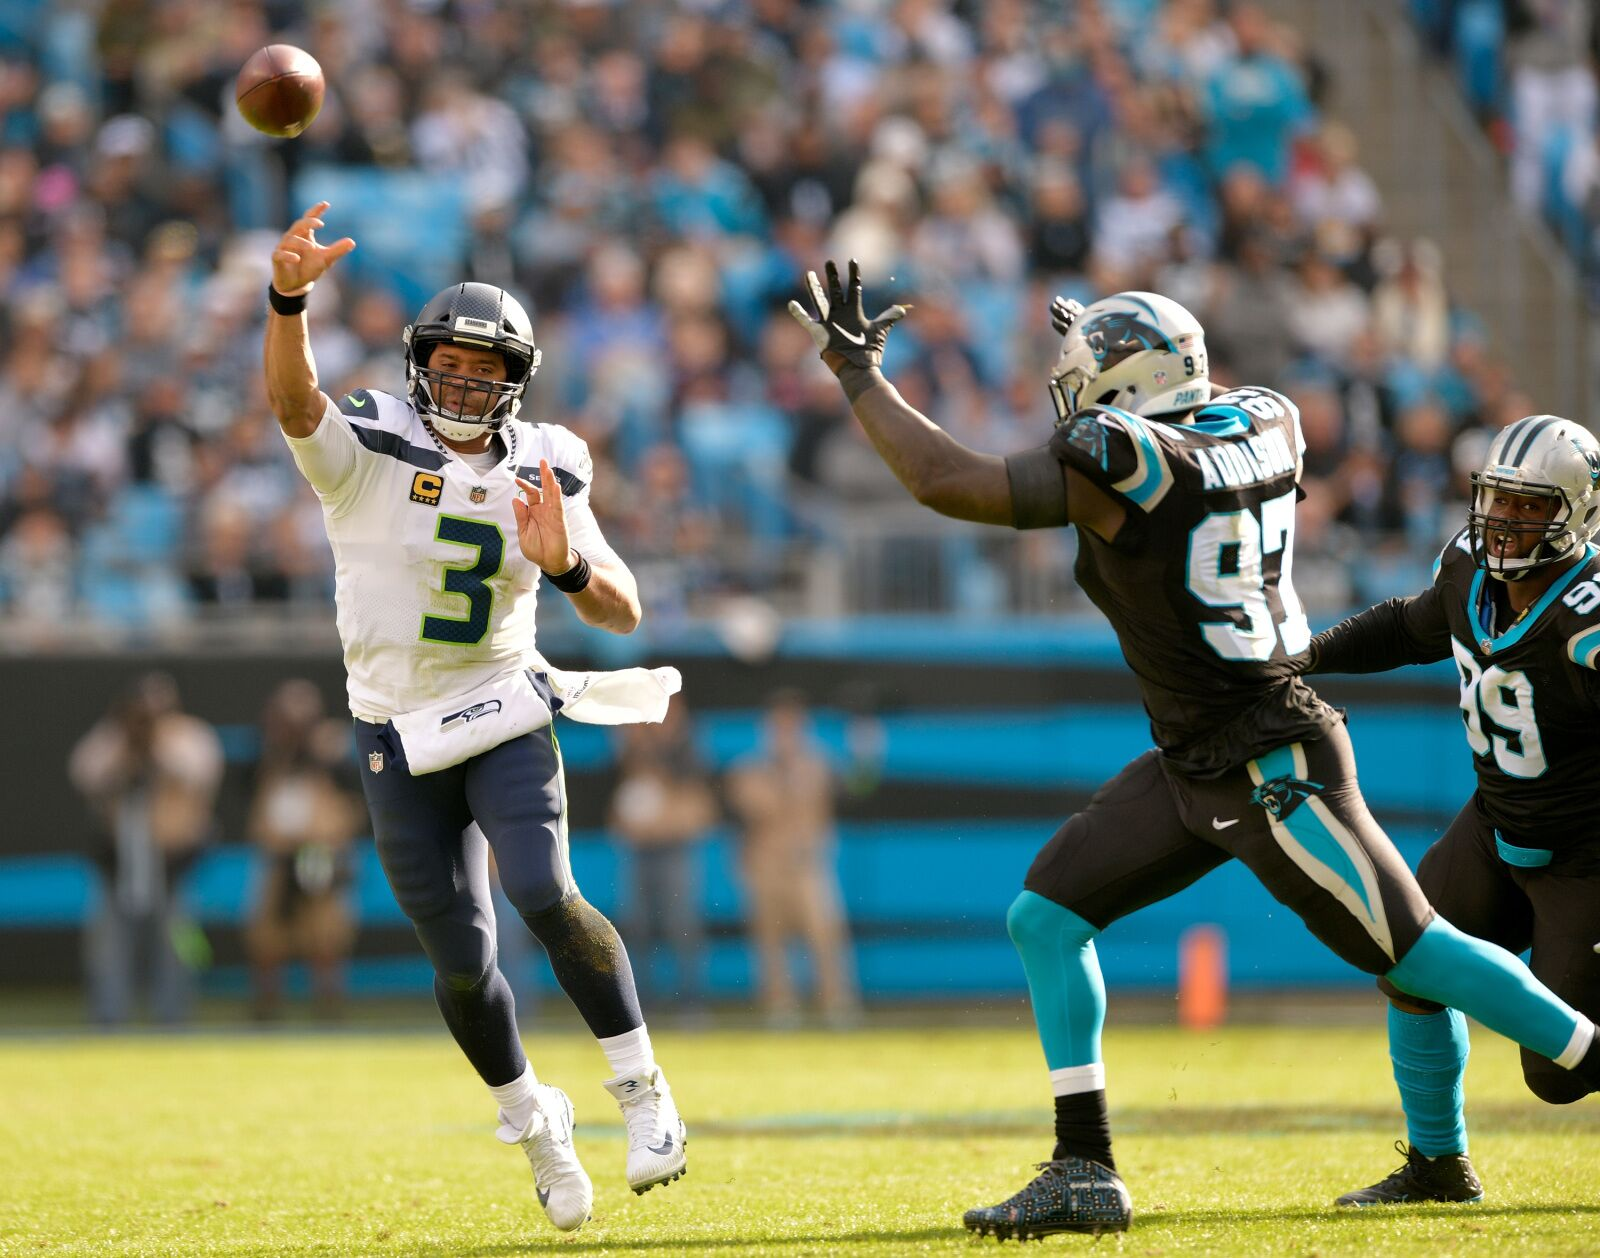 Seahawks versus Panthers: Our staff would be shocked with a Seattle loss